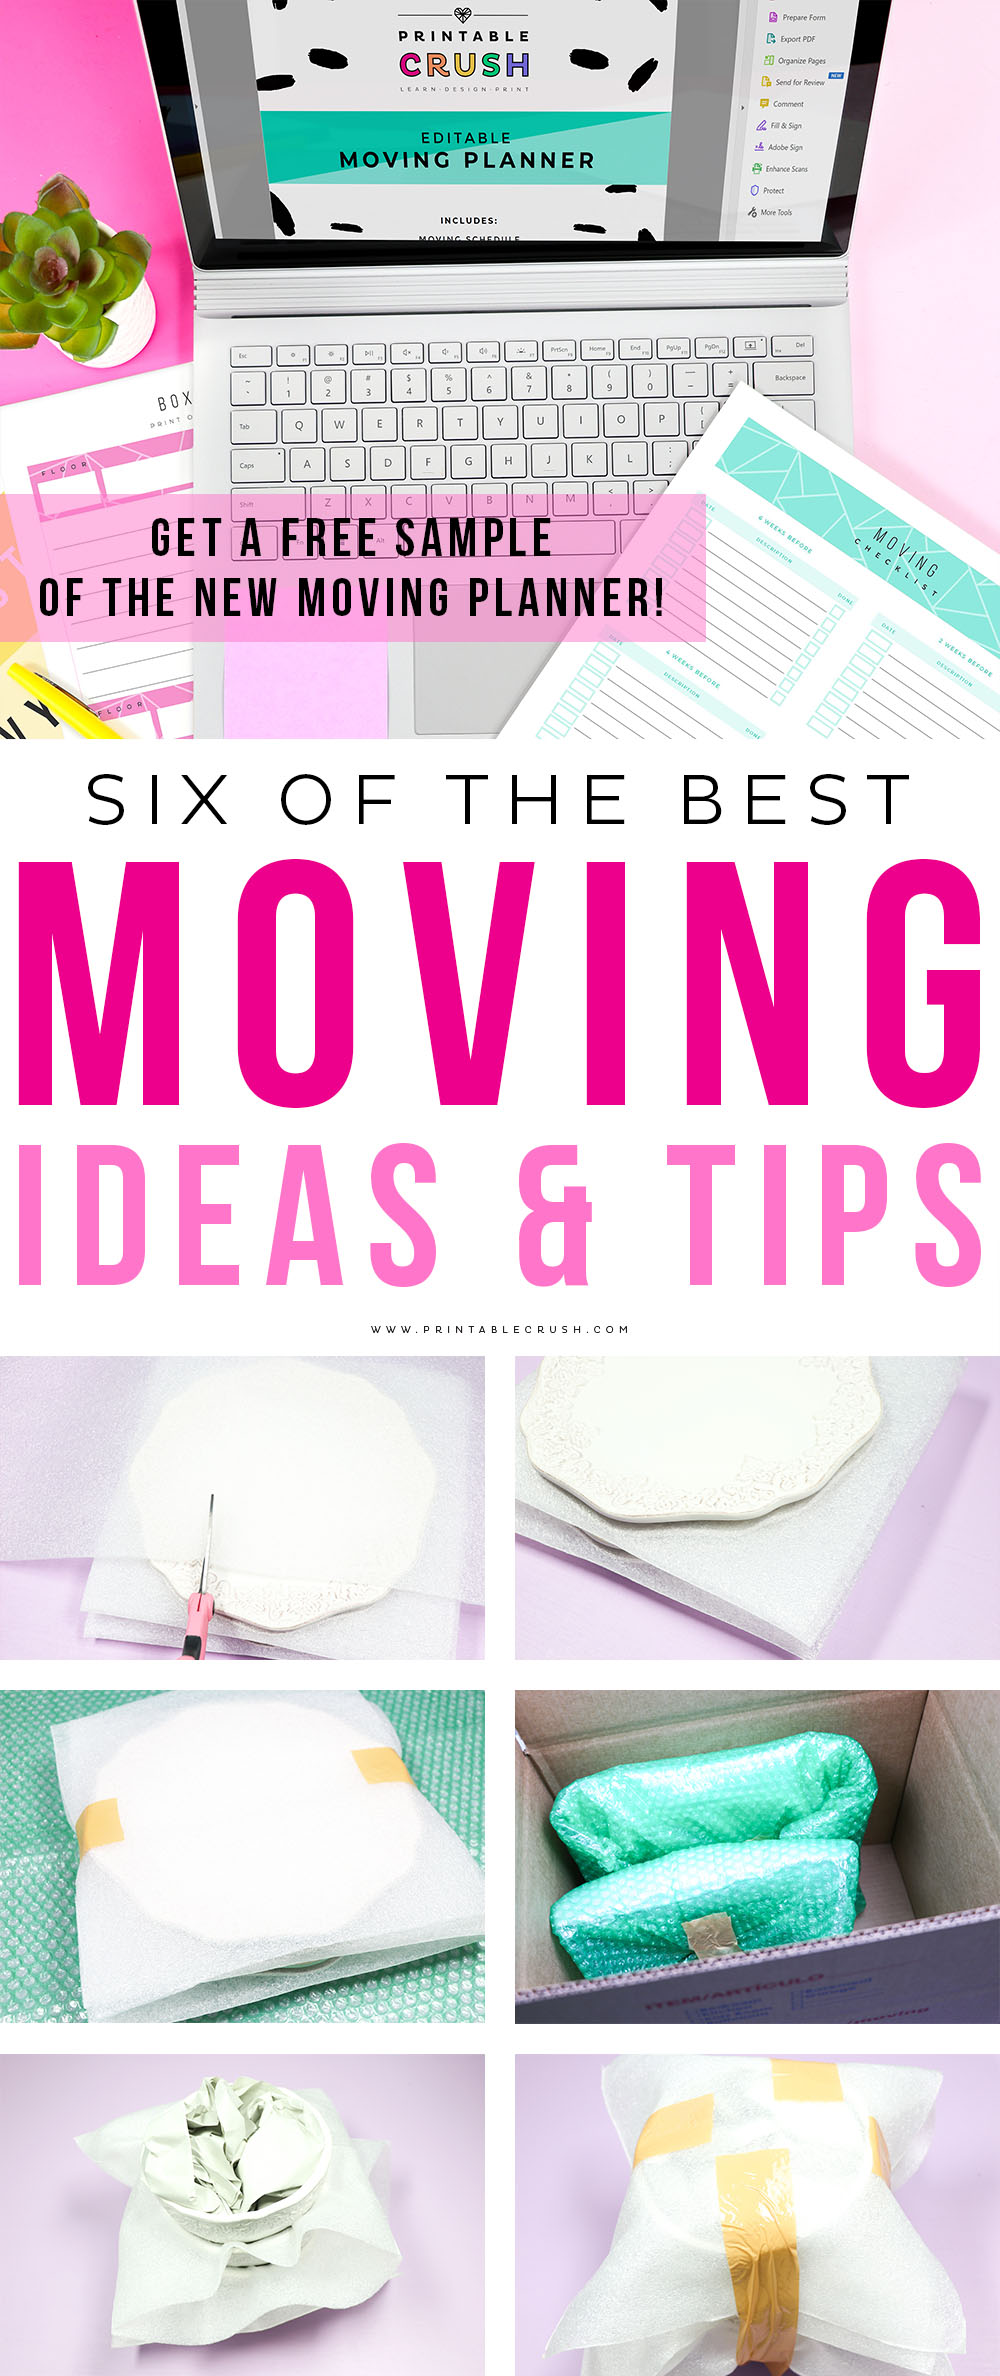 Have a less stressful move with these Moving Ideas and Tips. Plus try a sample of my new Moving Printable Planner Set! #movingtips #movingplanner #movingideas #moving #movingprintable via @printablecrush